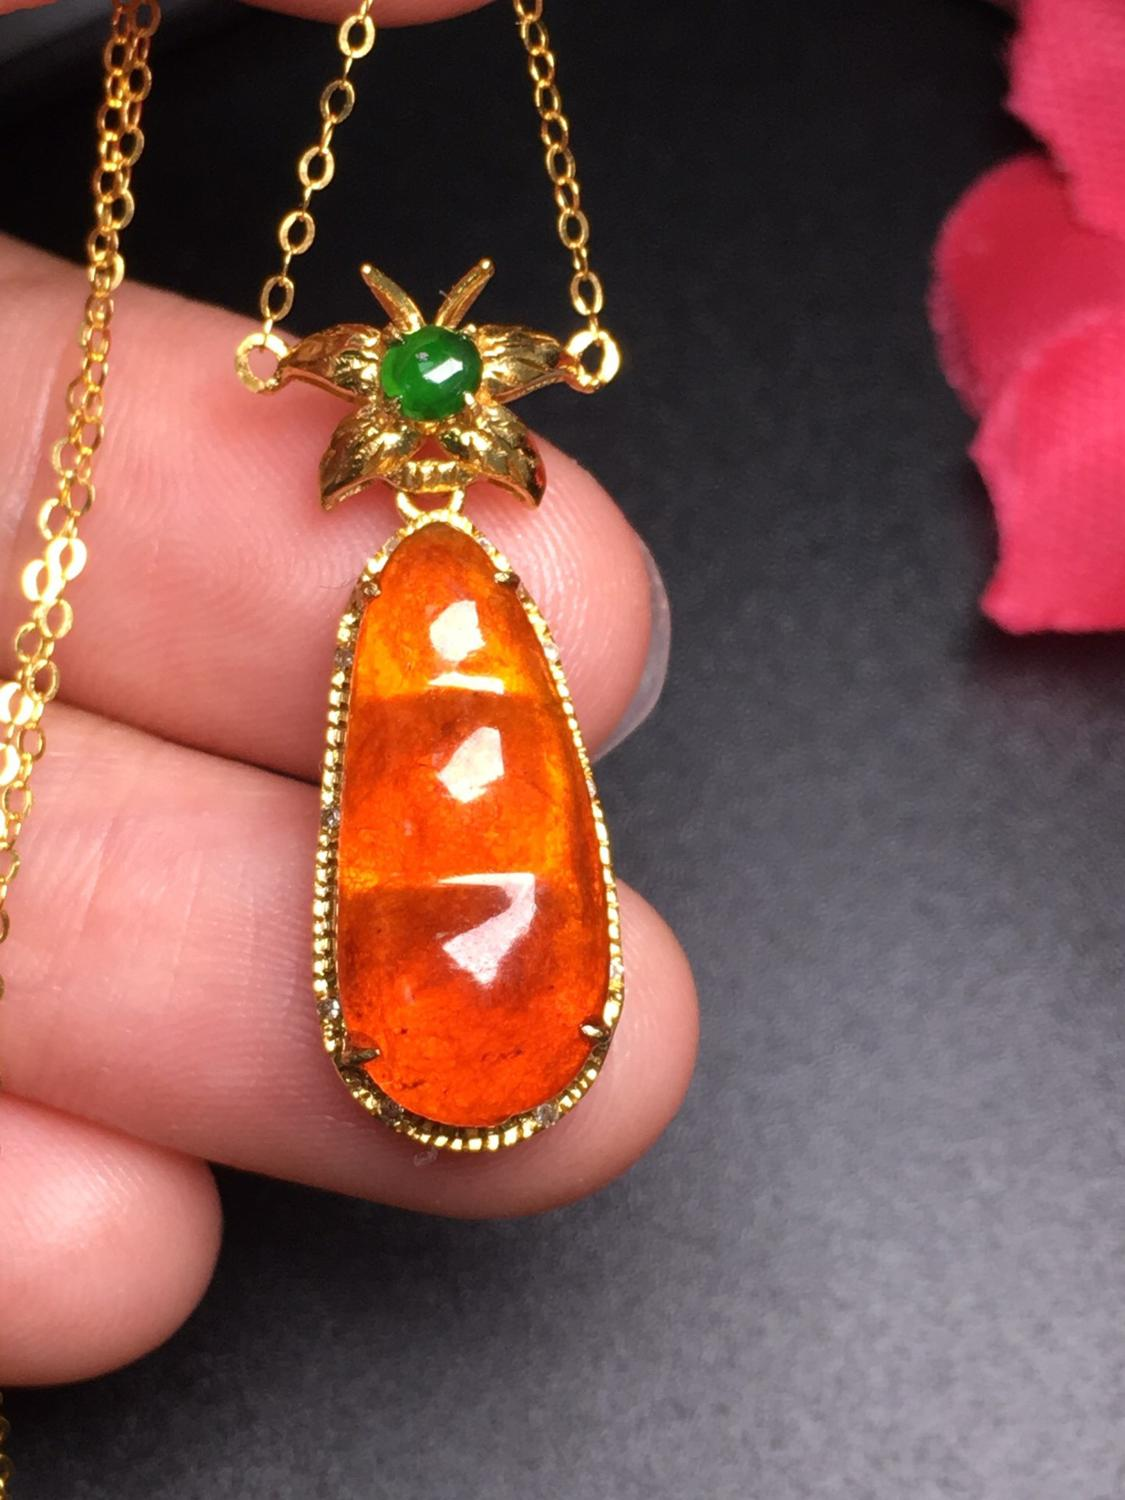 706 Fine Jewelry Pure 18K White Gold Diamonds Burmes Origin Buddha Natural Red Jade Female's Women Pendants Necklaces